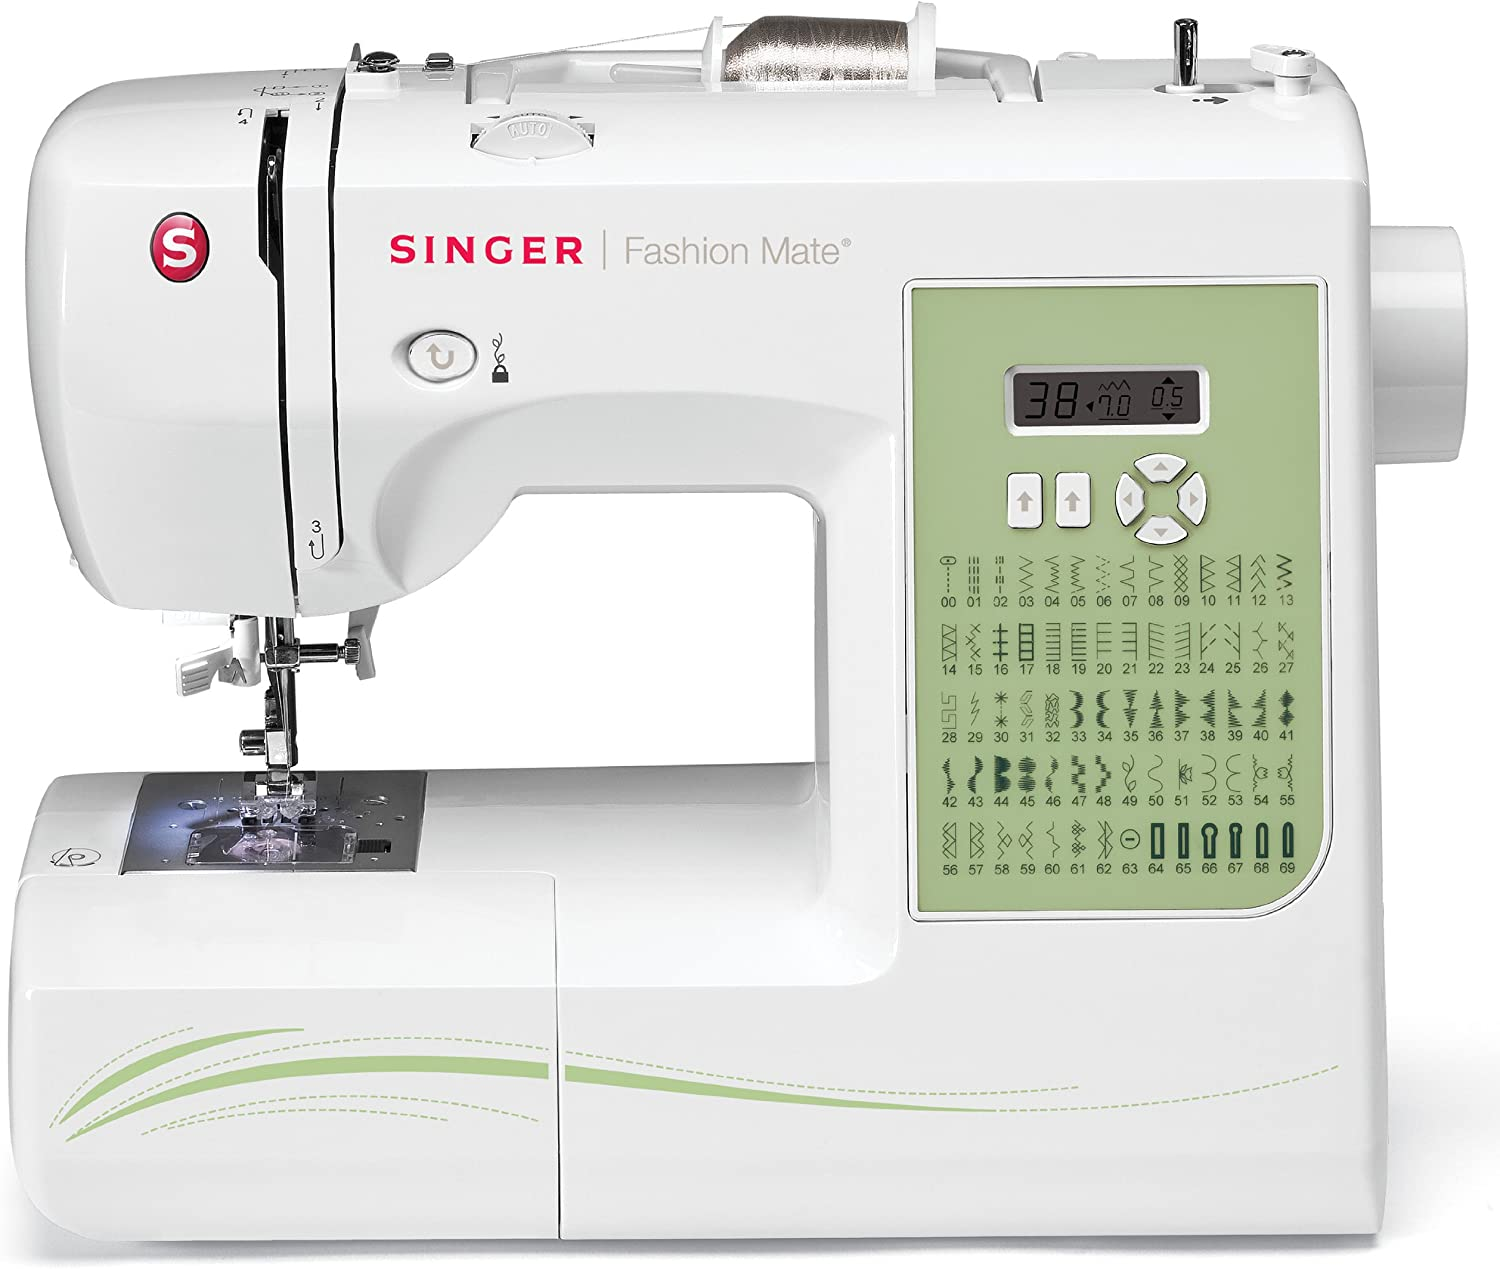 SINGER 7256 FASHION MATE 70 DE STITCH COMPUTER IZED FREE 7541 ...